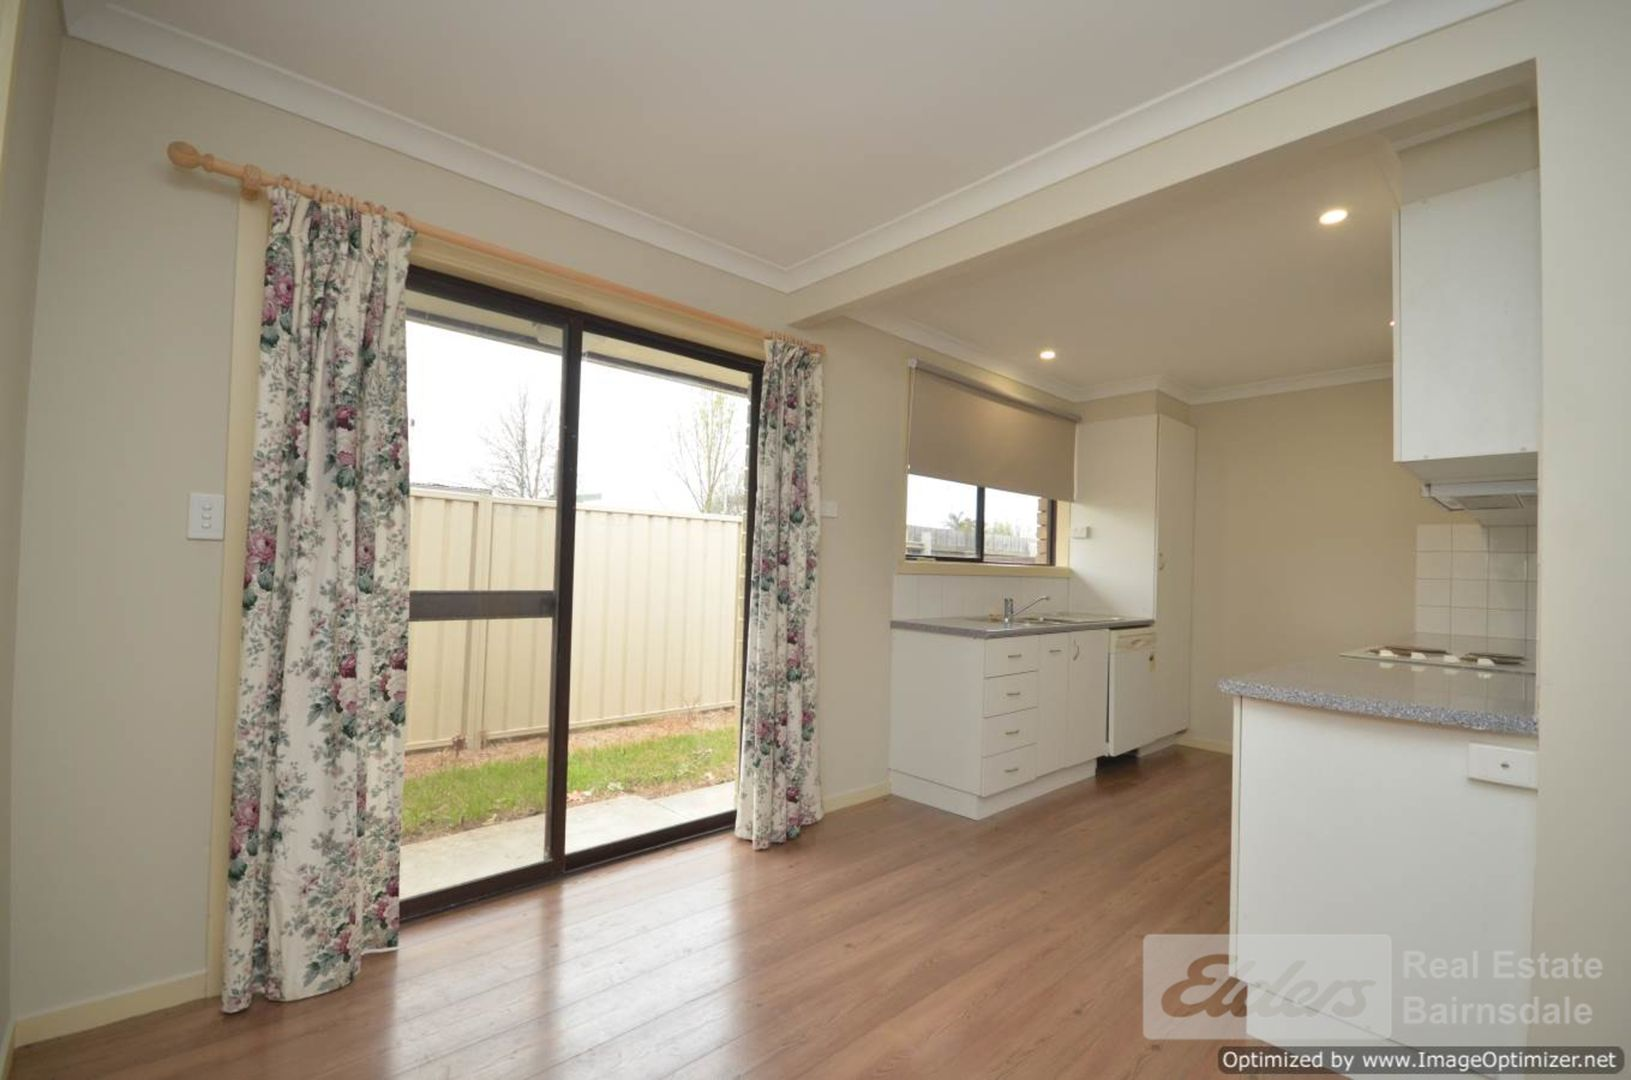 6/107 DAY STREET, Bairnsdale VIC 3875, Image 1